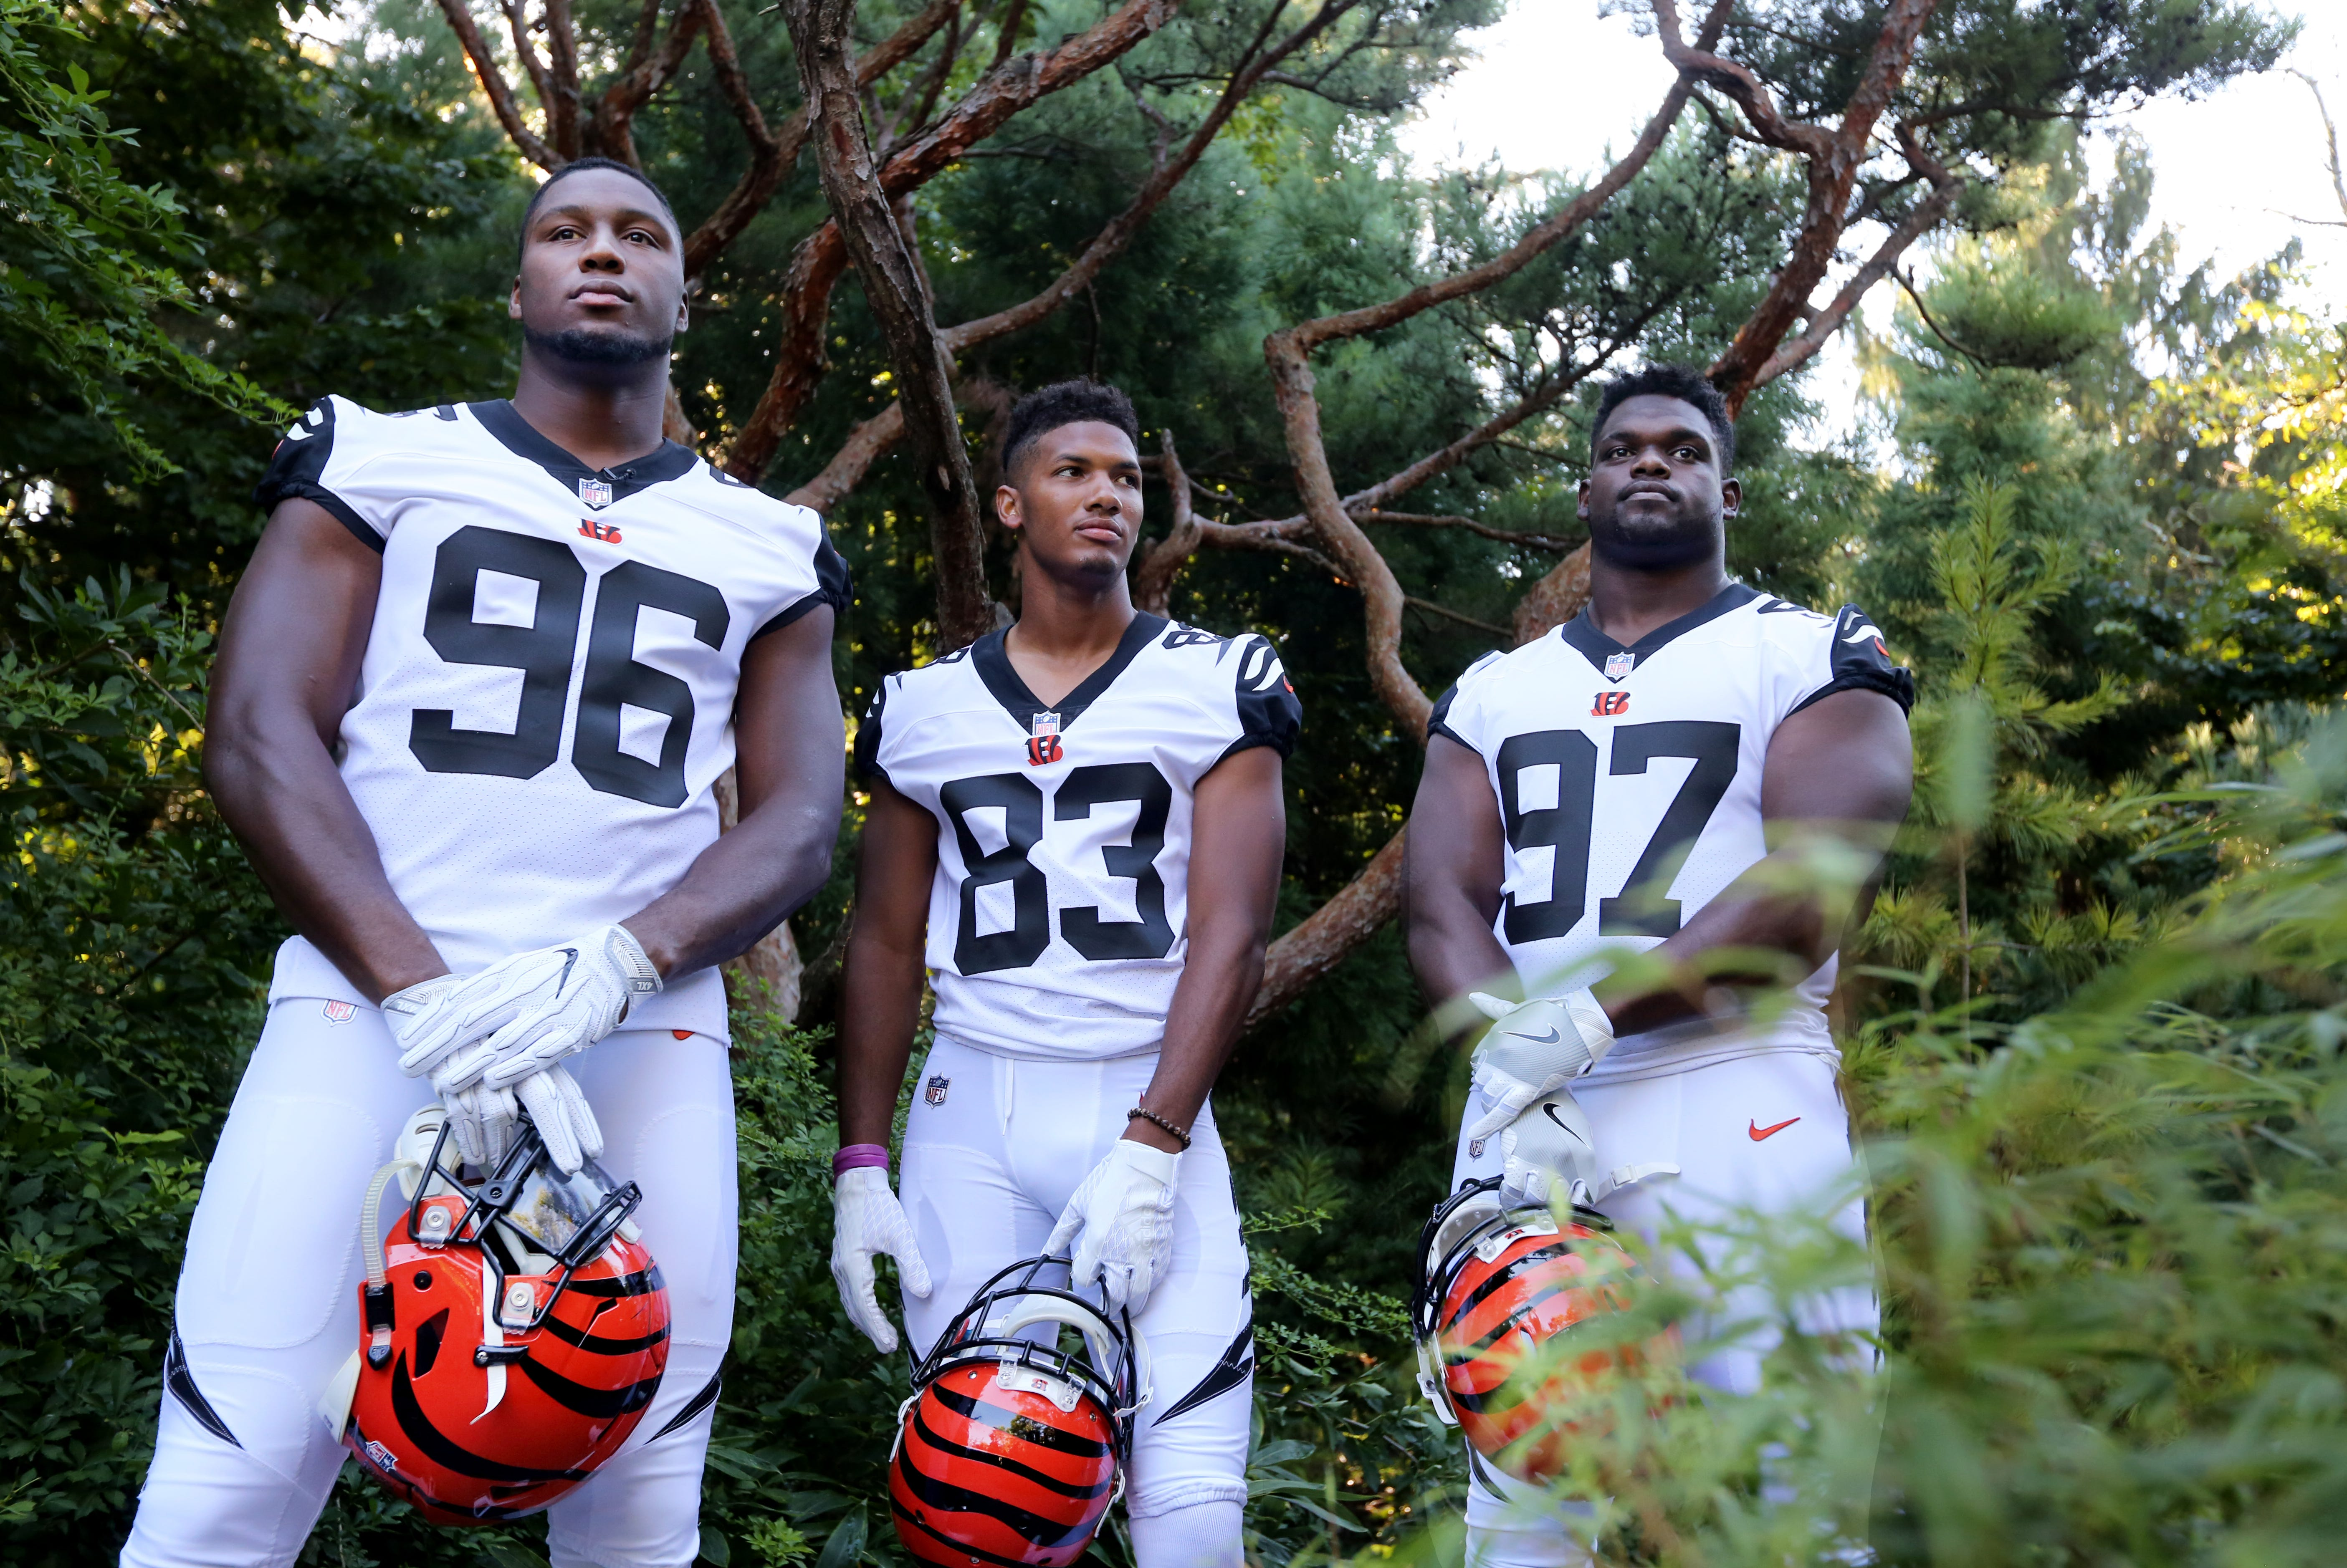 buy bengals color rush jersey